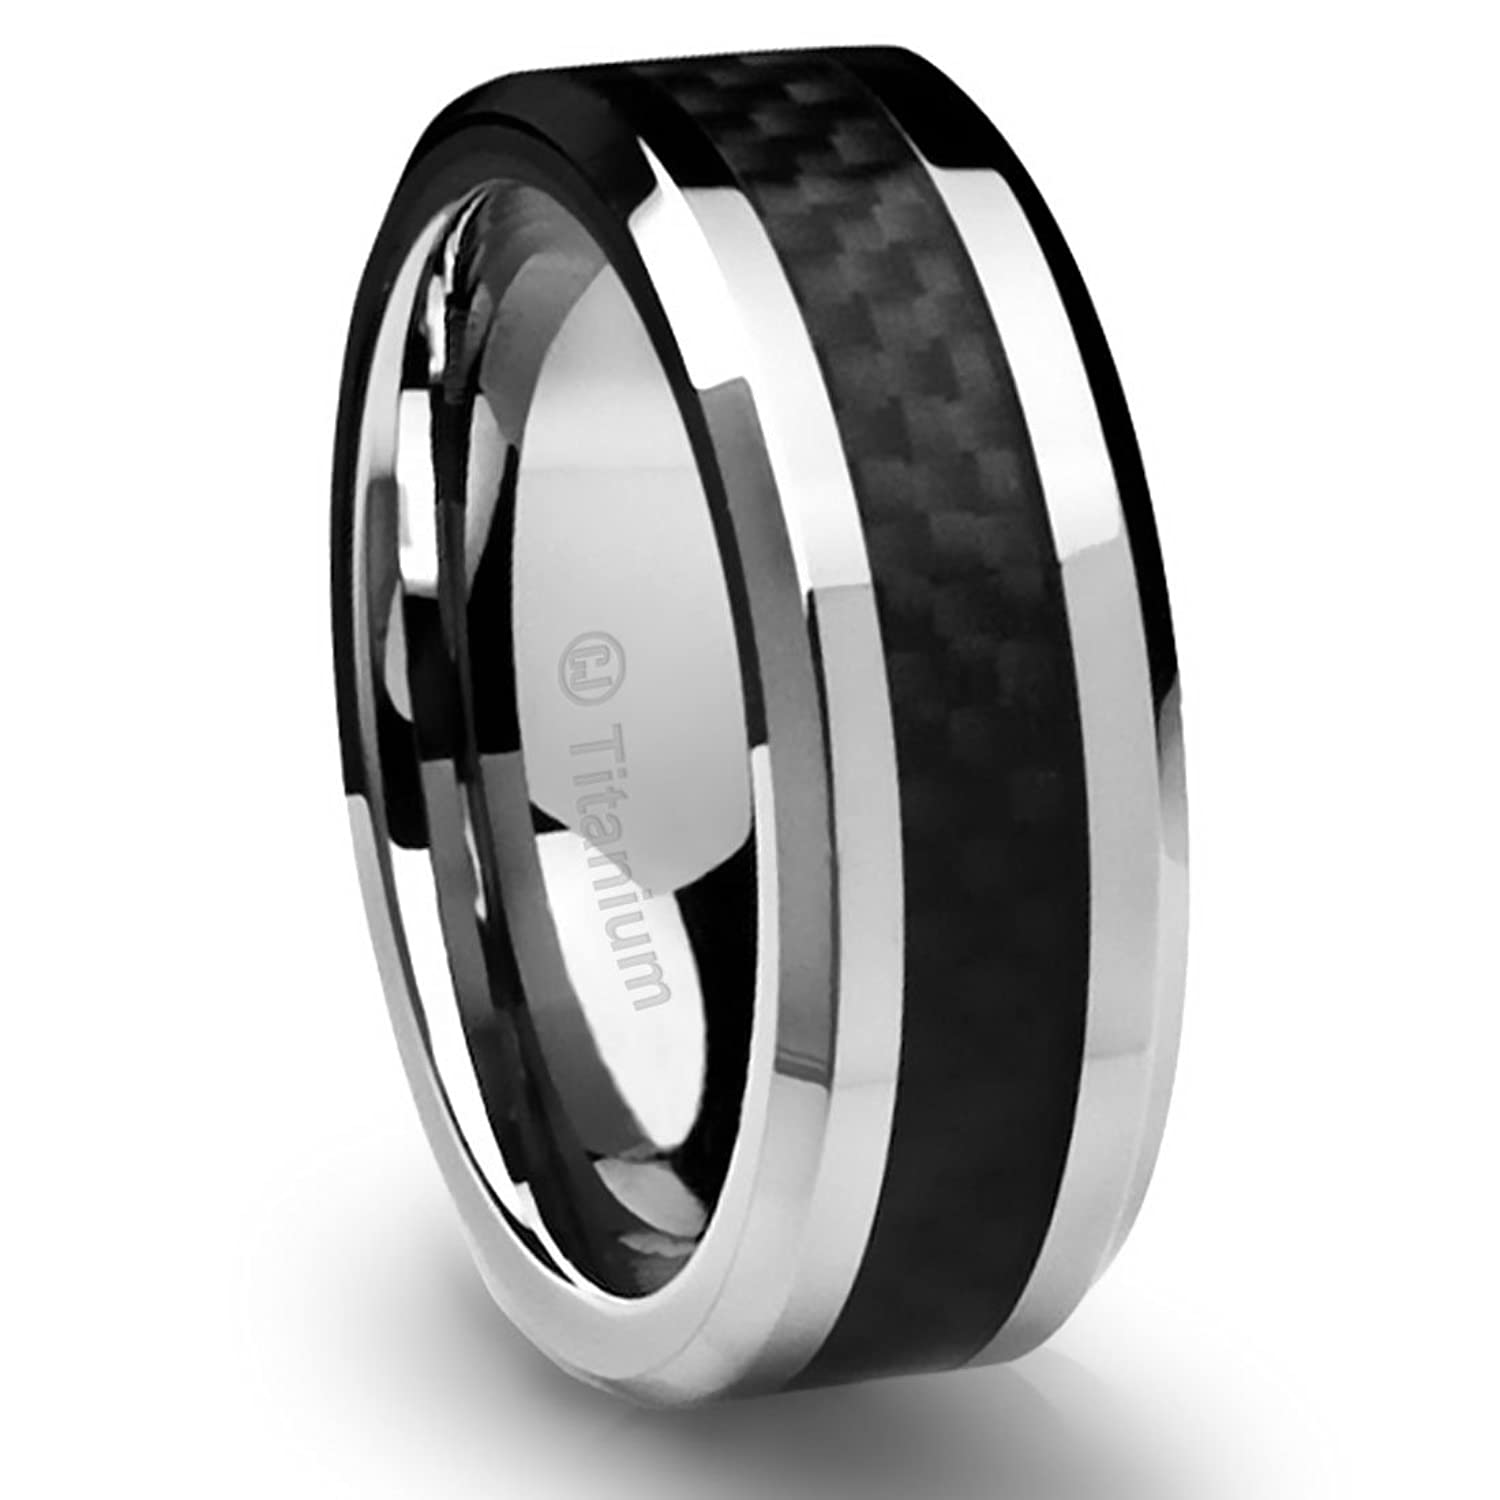 8mm mens titanium ring wedding band black carbon fiber inlay and beveled edges amazoncom - Mens Wedding Rings Black